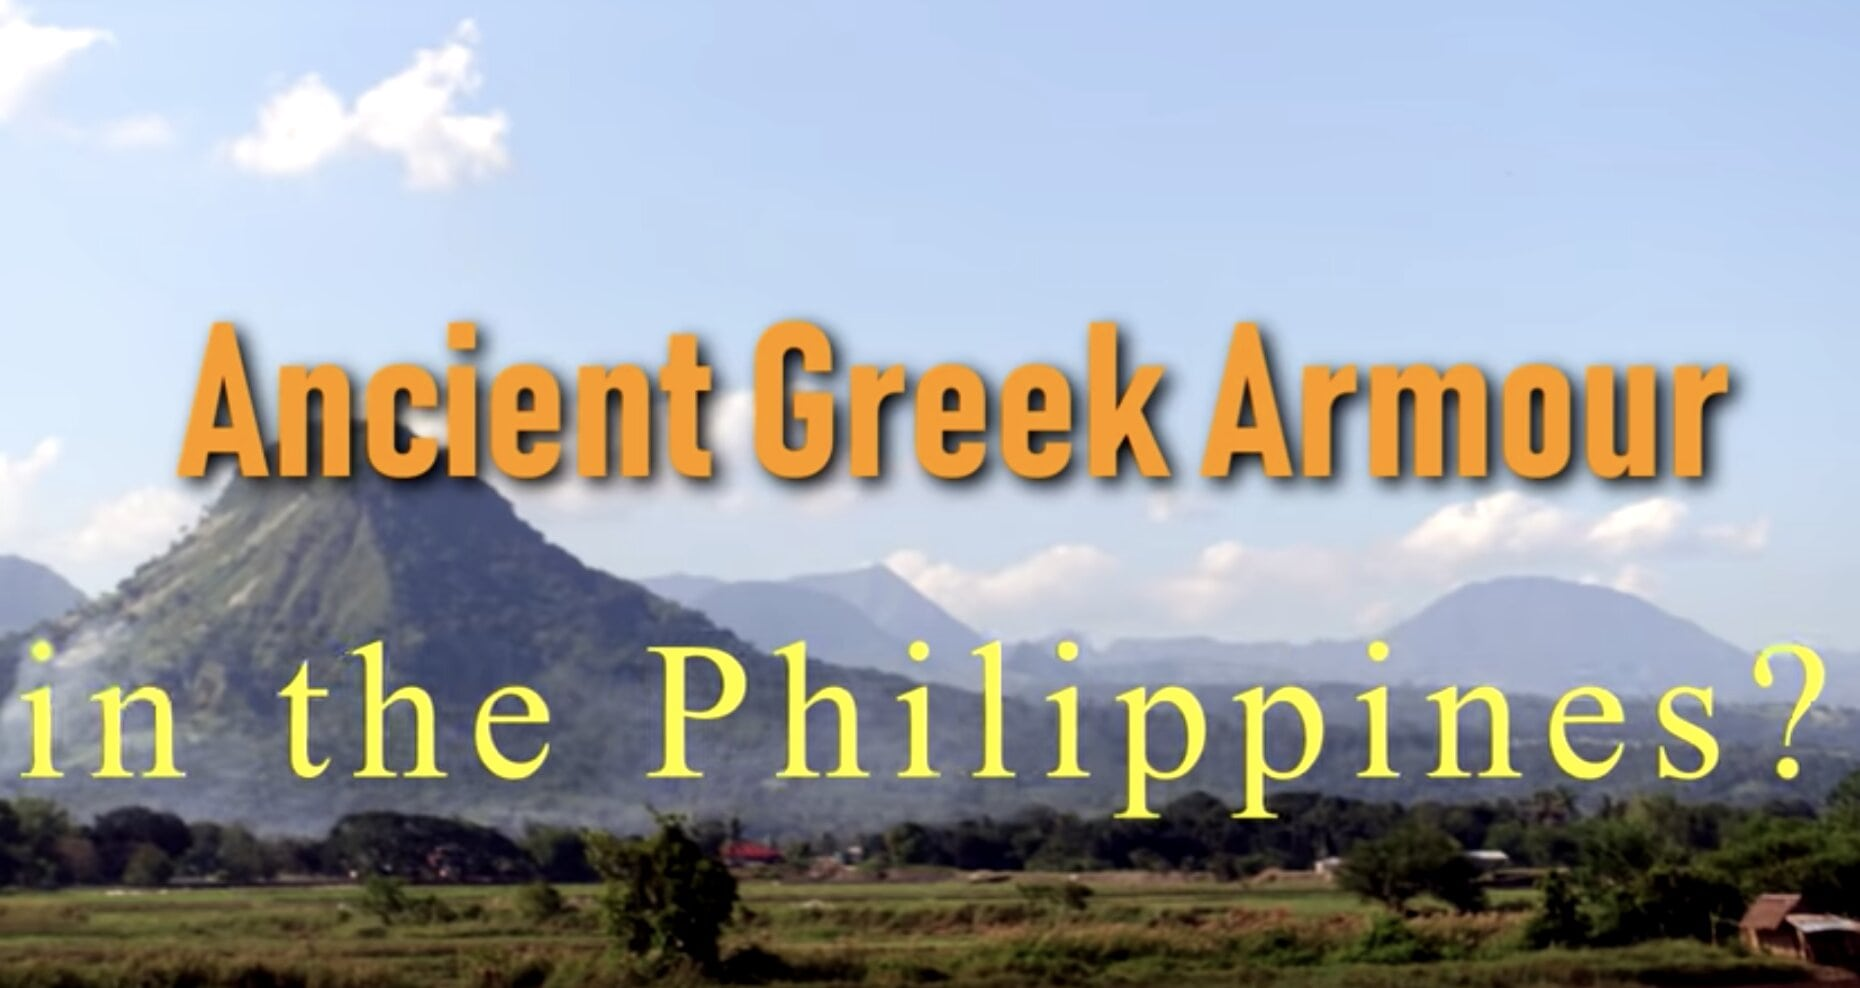 Ancient Greek Armour in the Philippines?